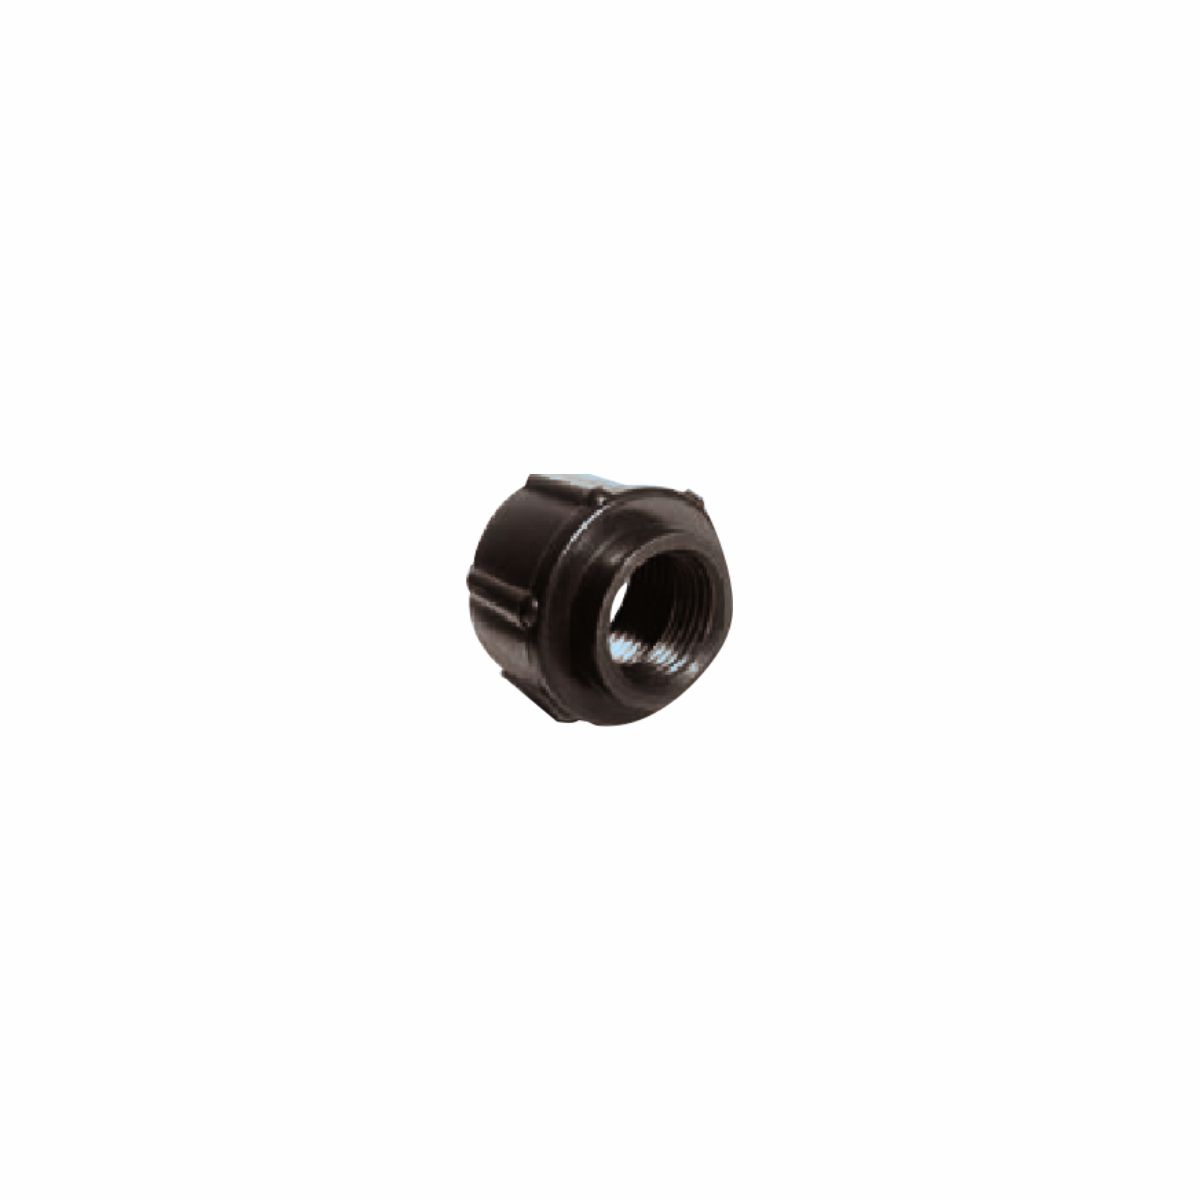 "Adaptador 3/4"" x 1/2"" do Aspersor Junior para Irrigação"